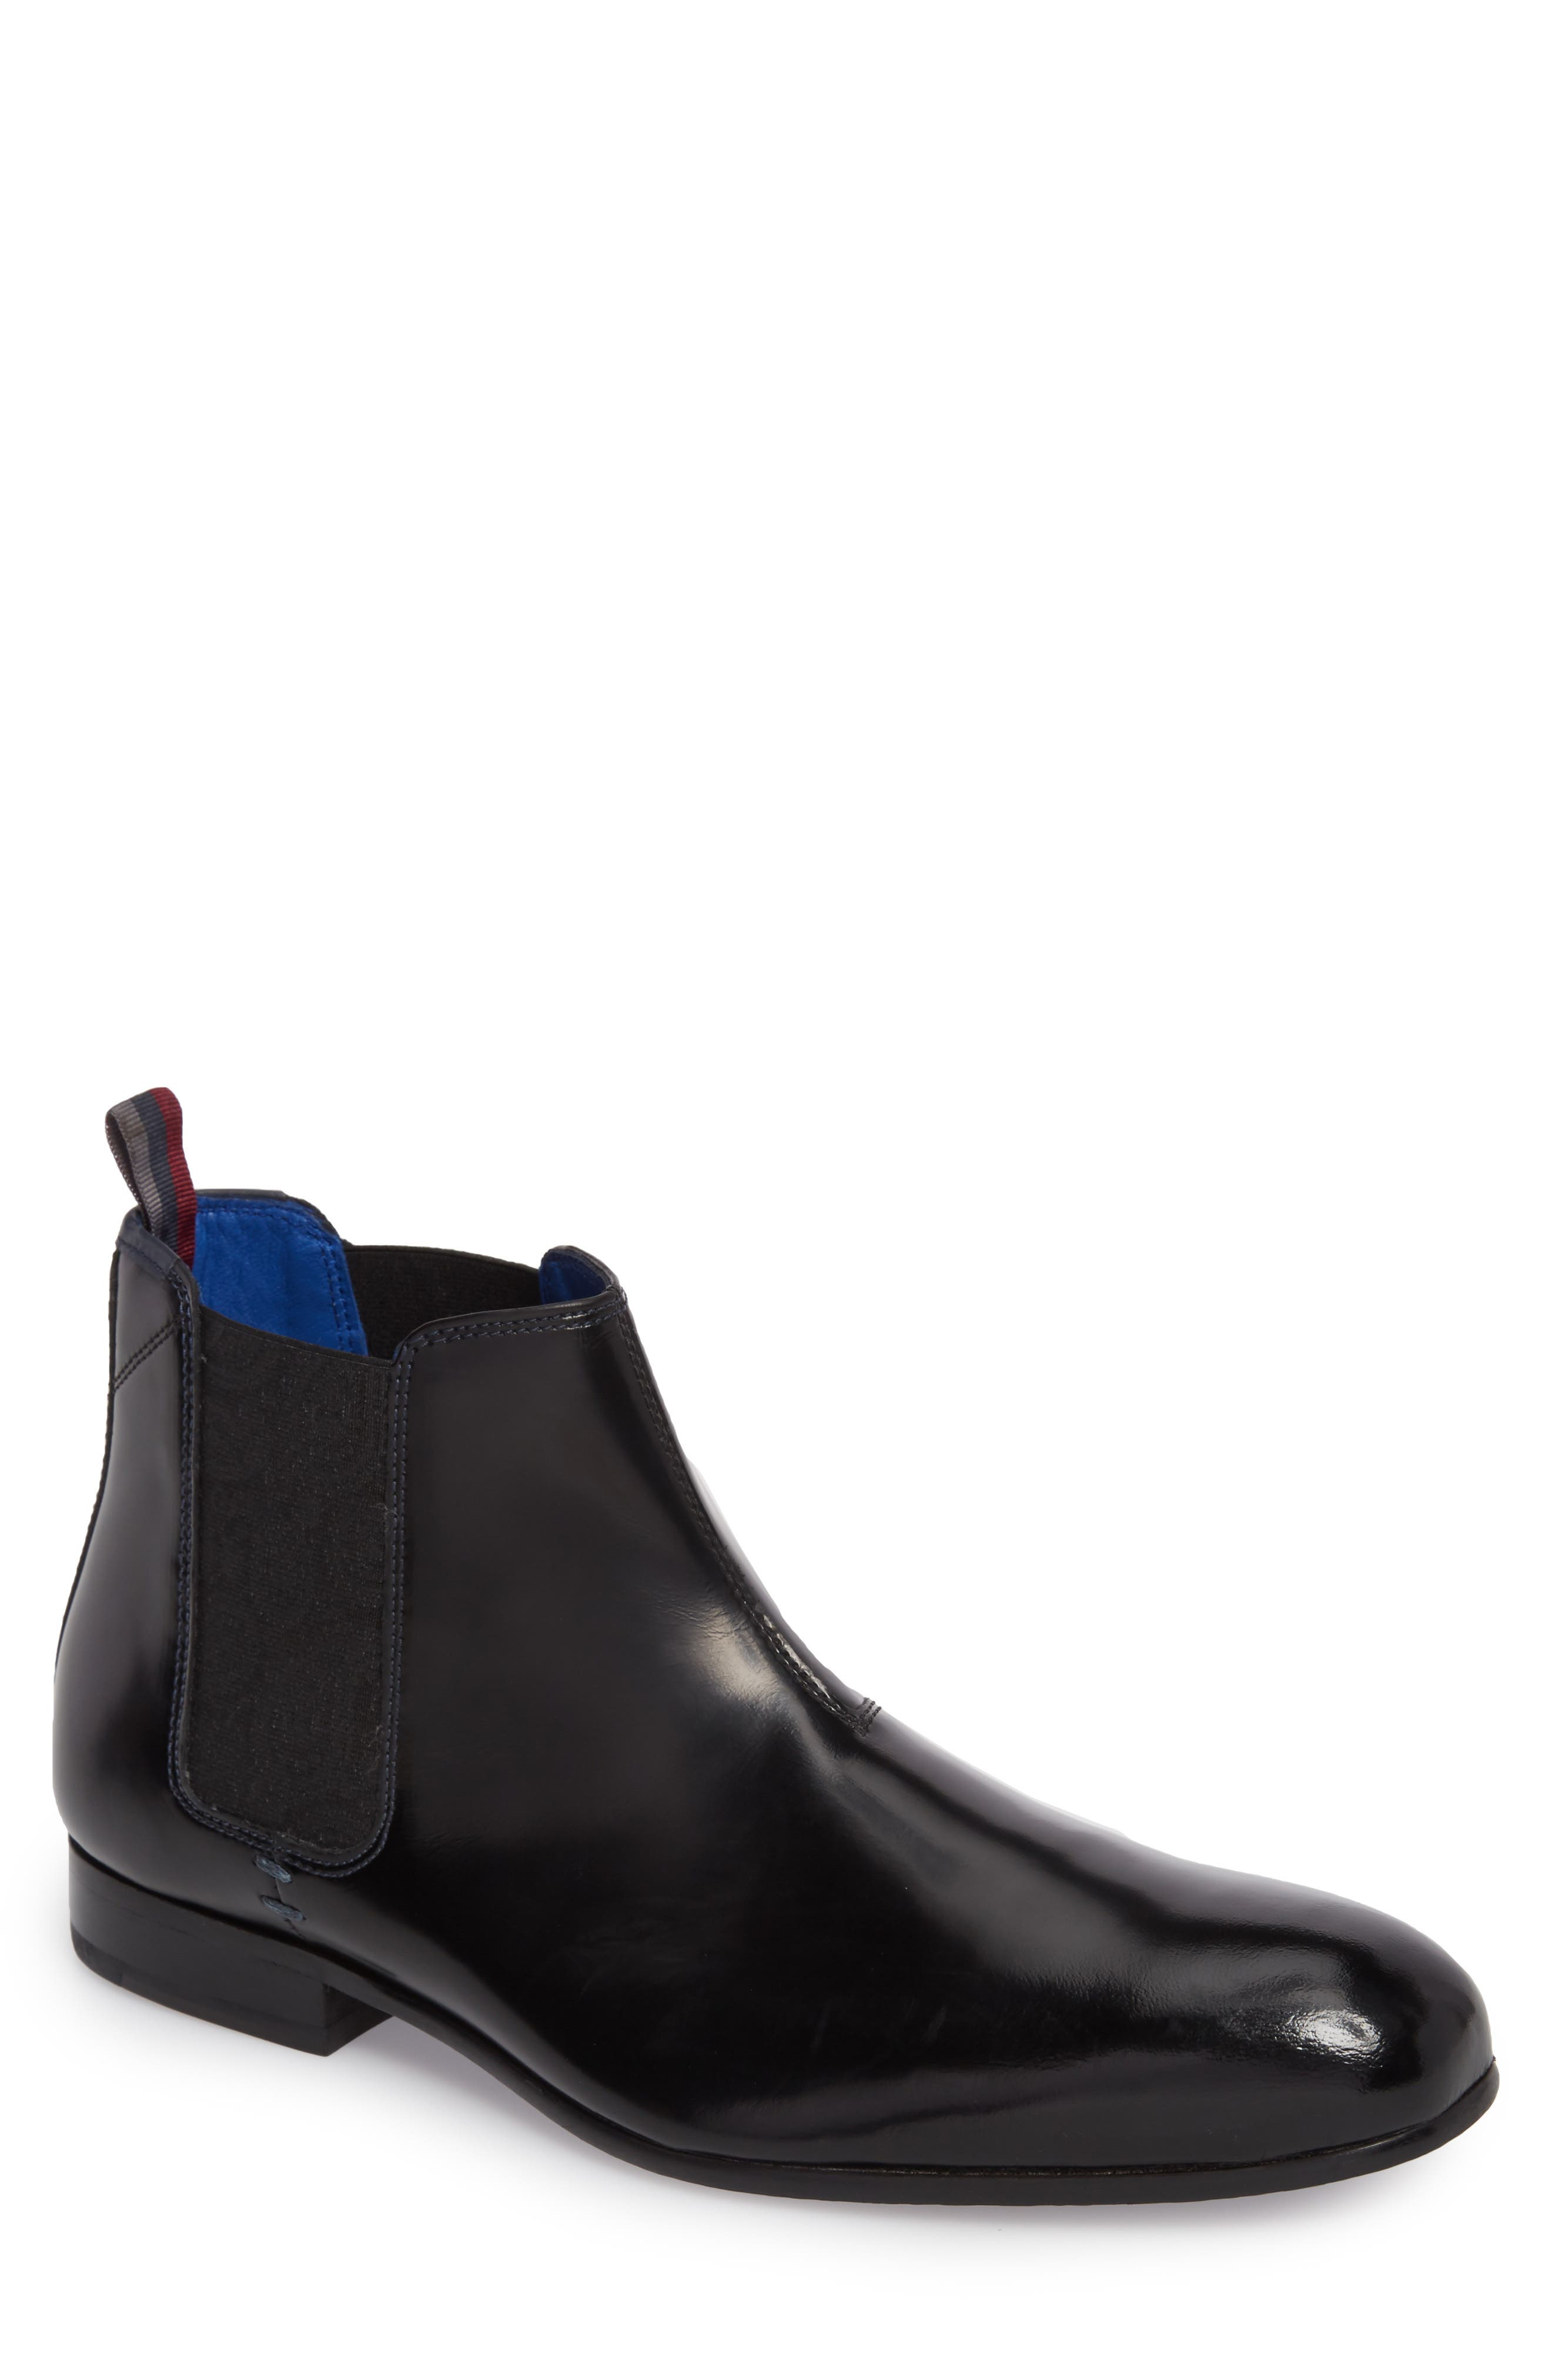 Auldham Chelsea Boot,                         Main,                         color, Black Leather